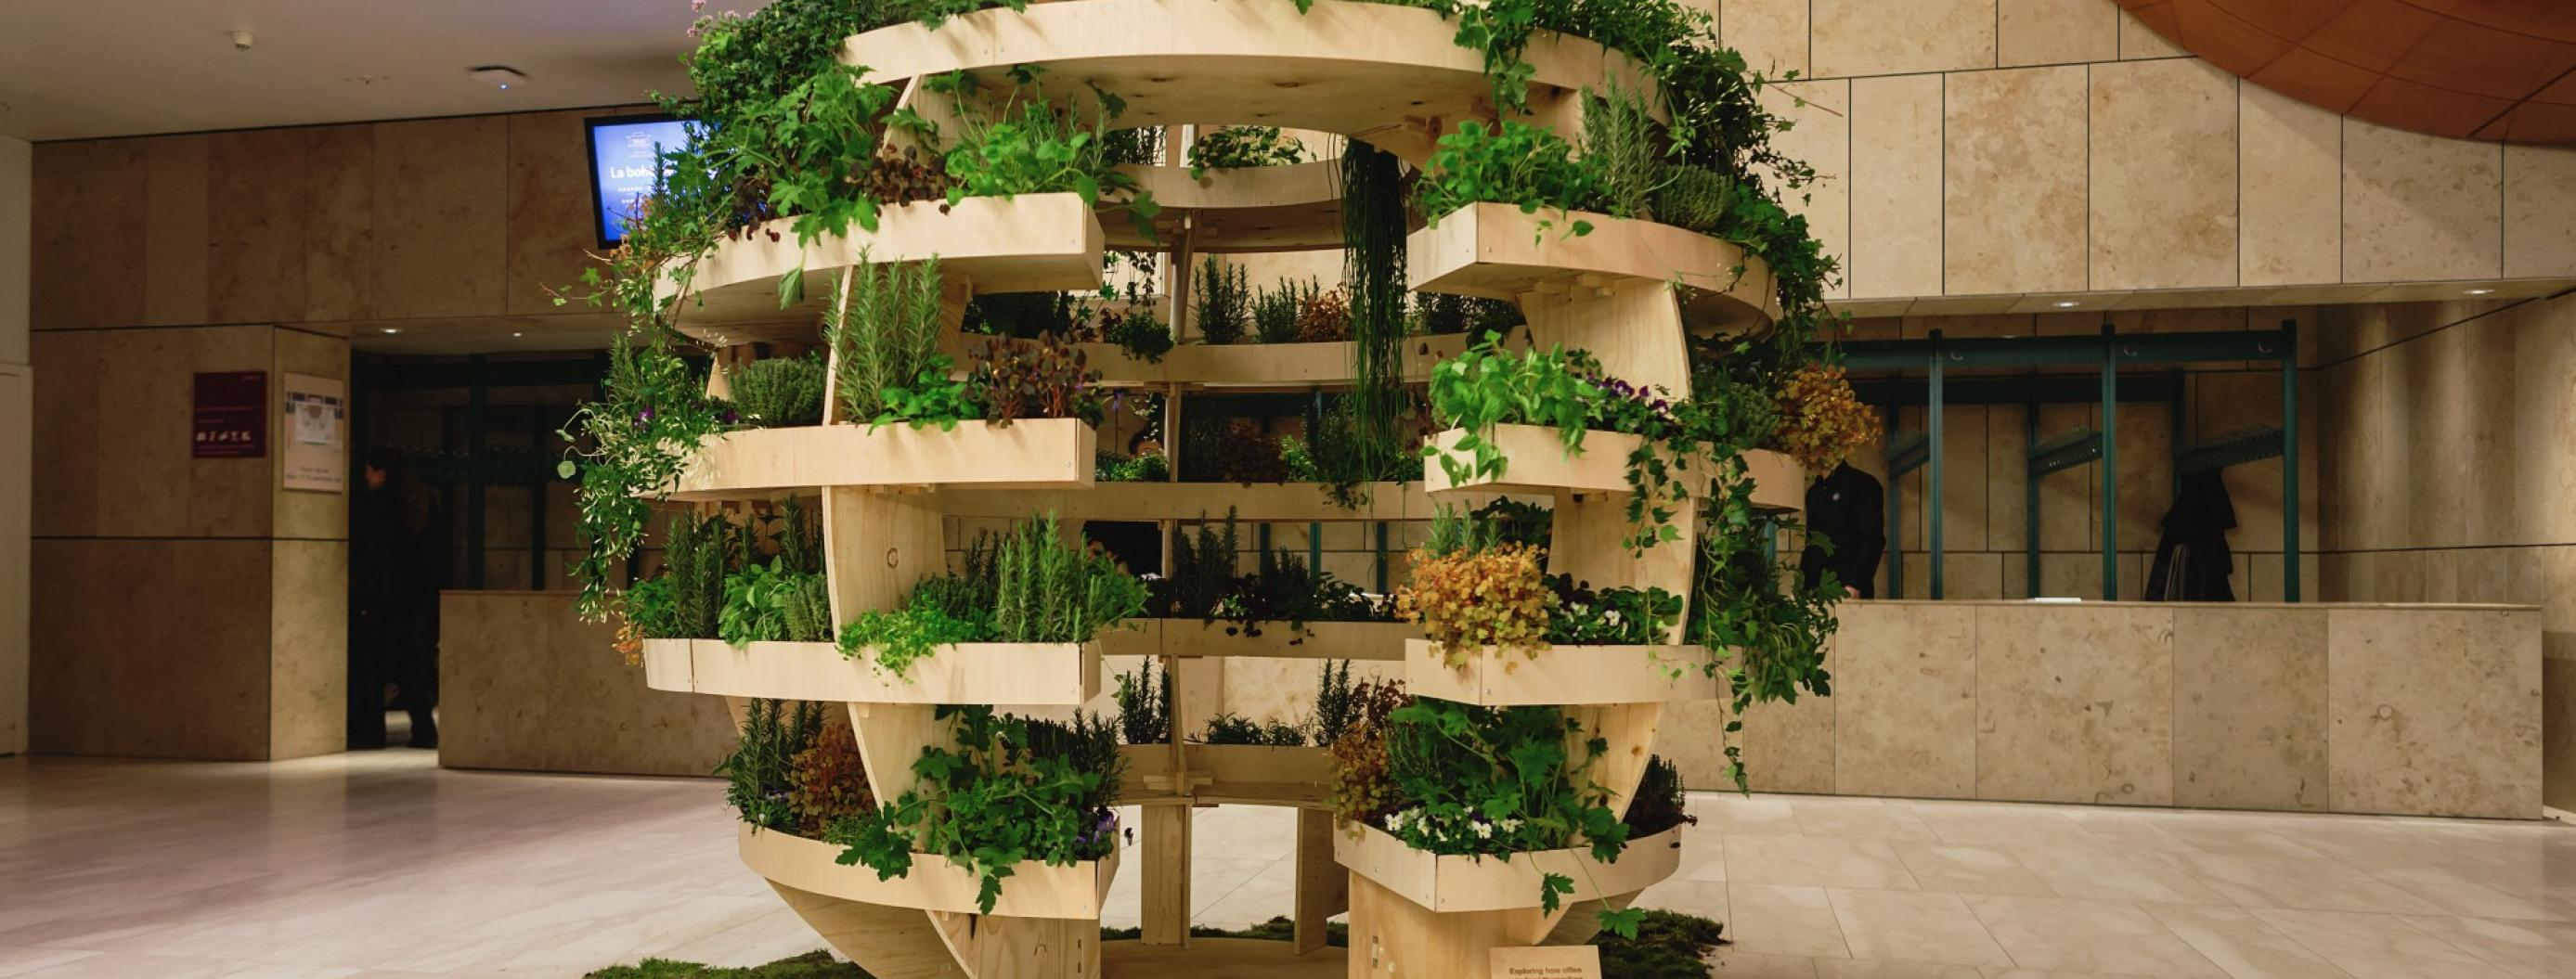 IKEA Releases Free Plans for a Sustainable Spherical Garden